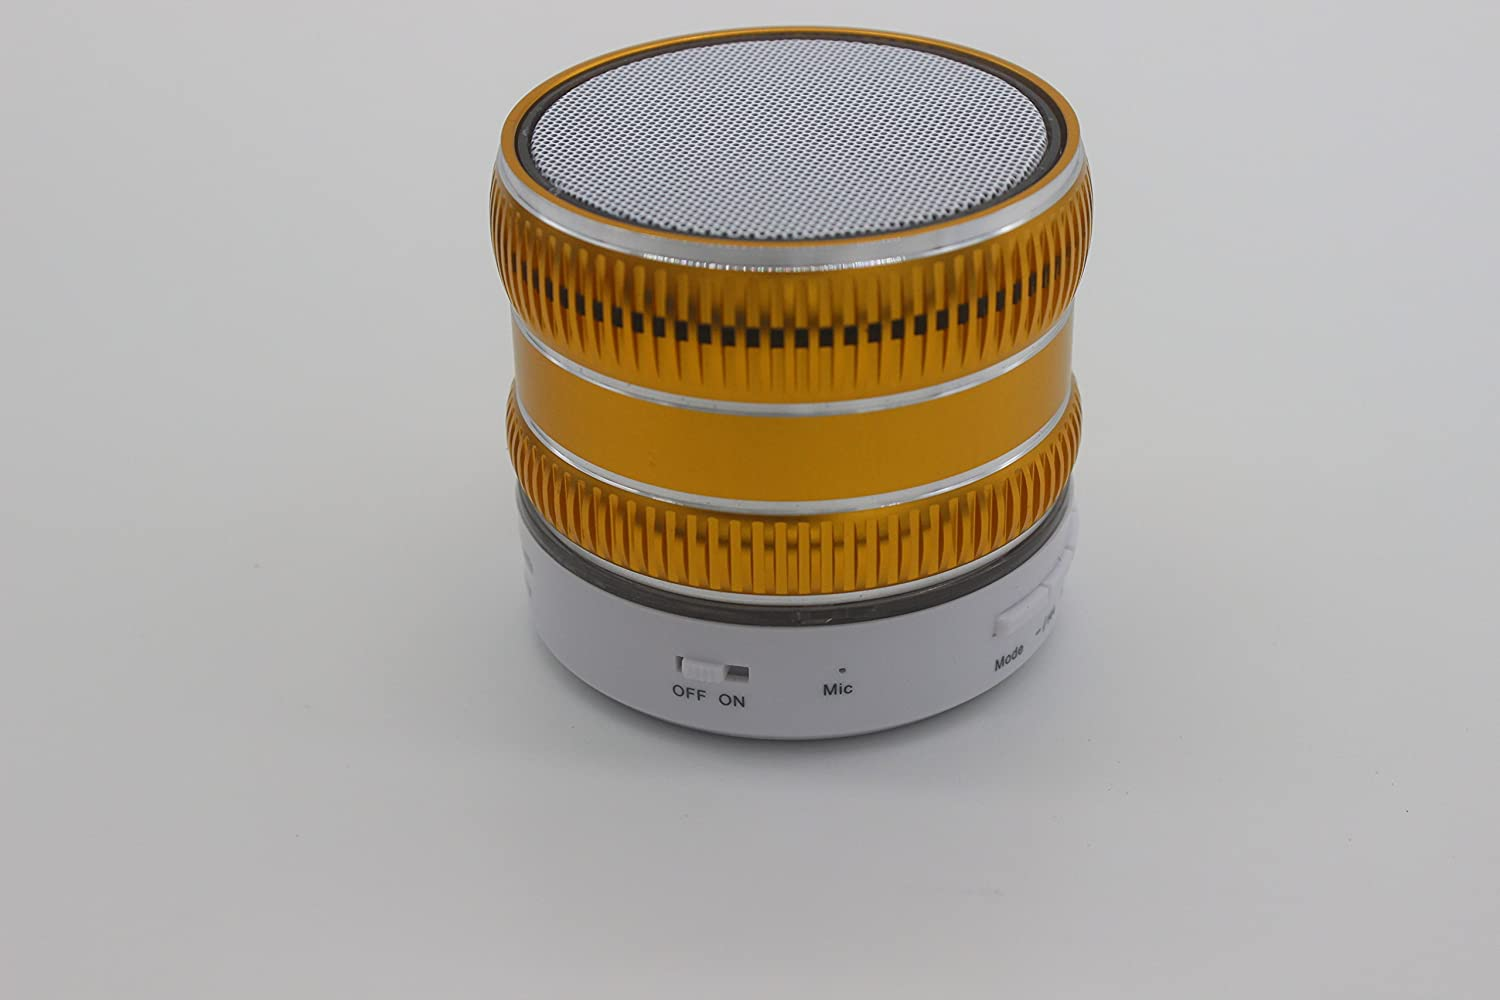 (2015 New Arrival)high Quality Mini Lightweight Portable Premium Sound Wireless Bluetooth Speaker with Rechargeable Battery - Enhanced Bass, Support Micro Tf Card with LED Light(S71U-Yellow new arrival single board tcs cdp pro plus generic 3 in 1 new nec relays bluetooth 2014 r2 2015r3 with keygen tool free shipping